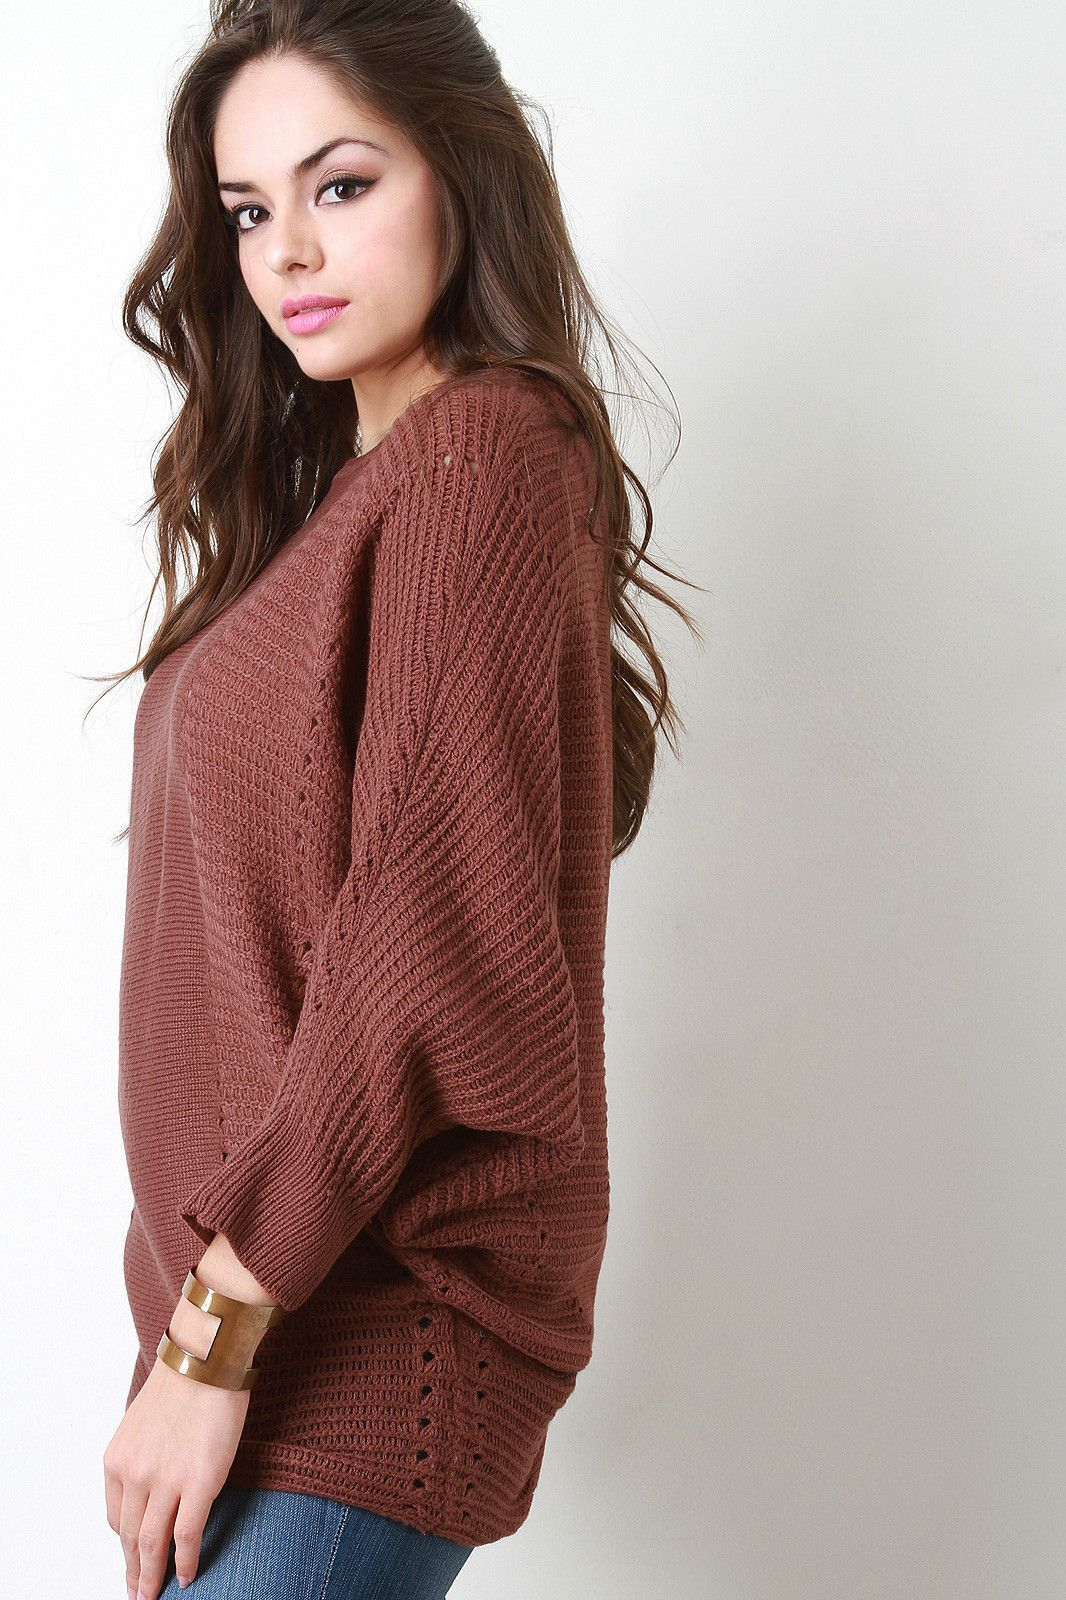 Contrast Knit Baggy Bat Wing Sweater | Bat wings and Products